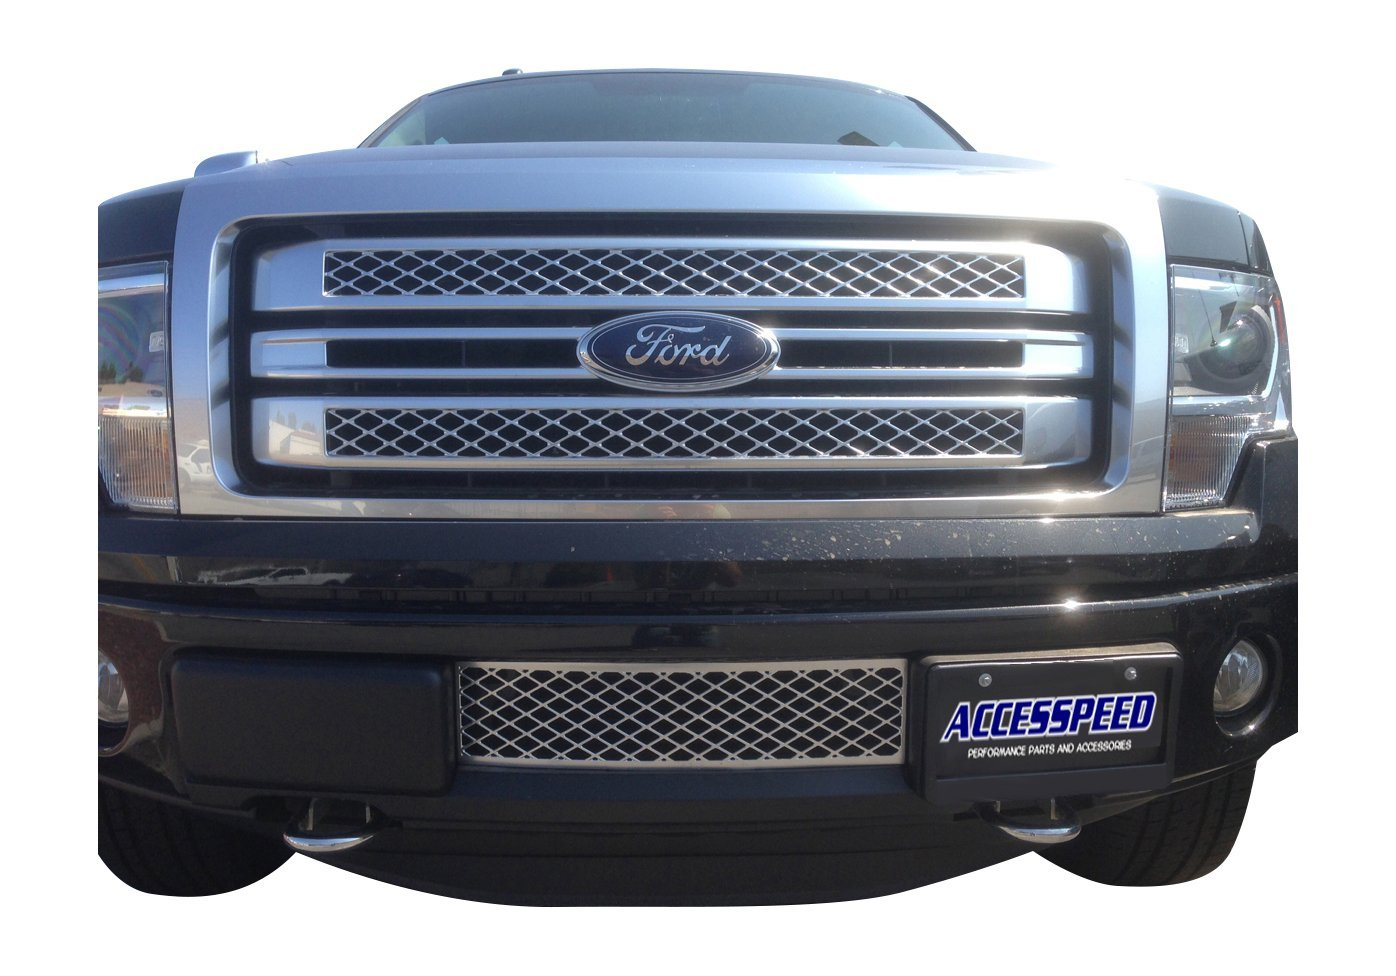 Amazon Com Ford F150 Chrome Grille Accesspeed Durable Oem Style Abs Plastic Lower Bumper Grille Insert Fits 2013 Ford F 150 Trucks Automotive